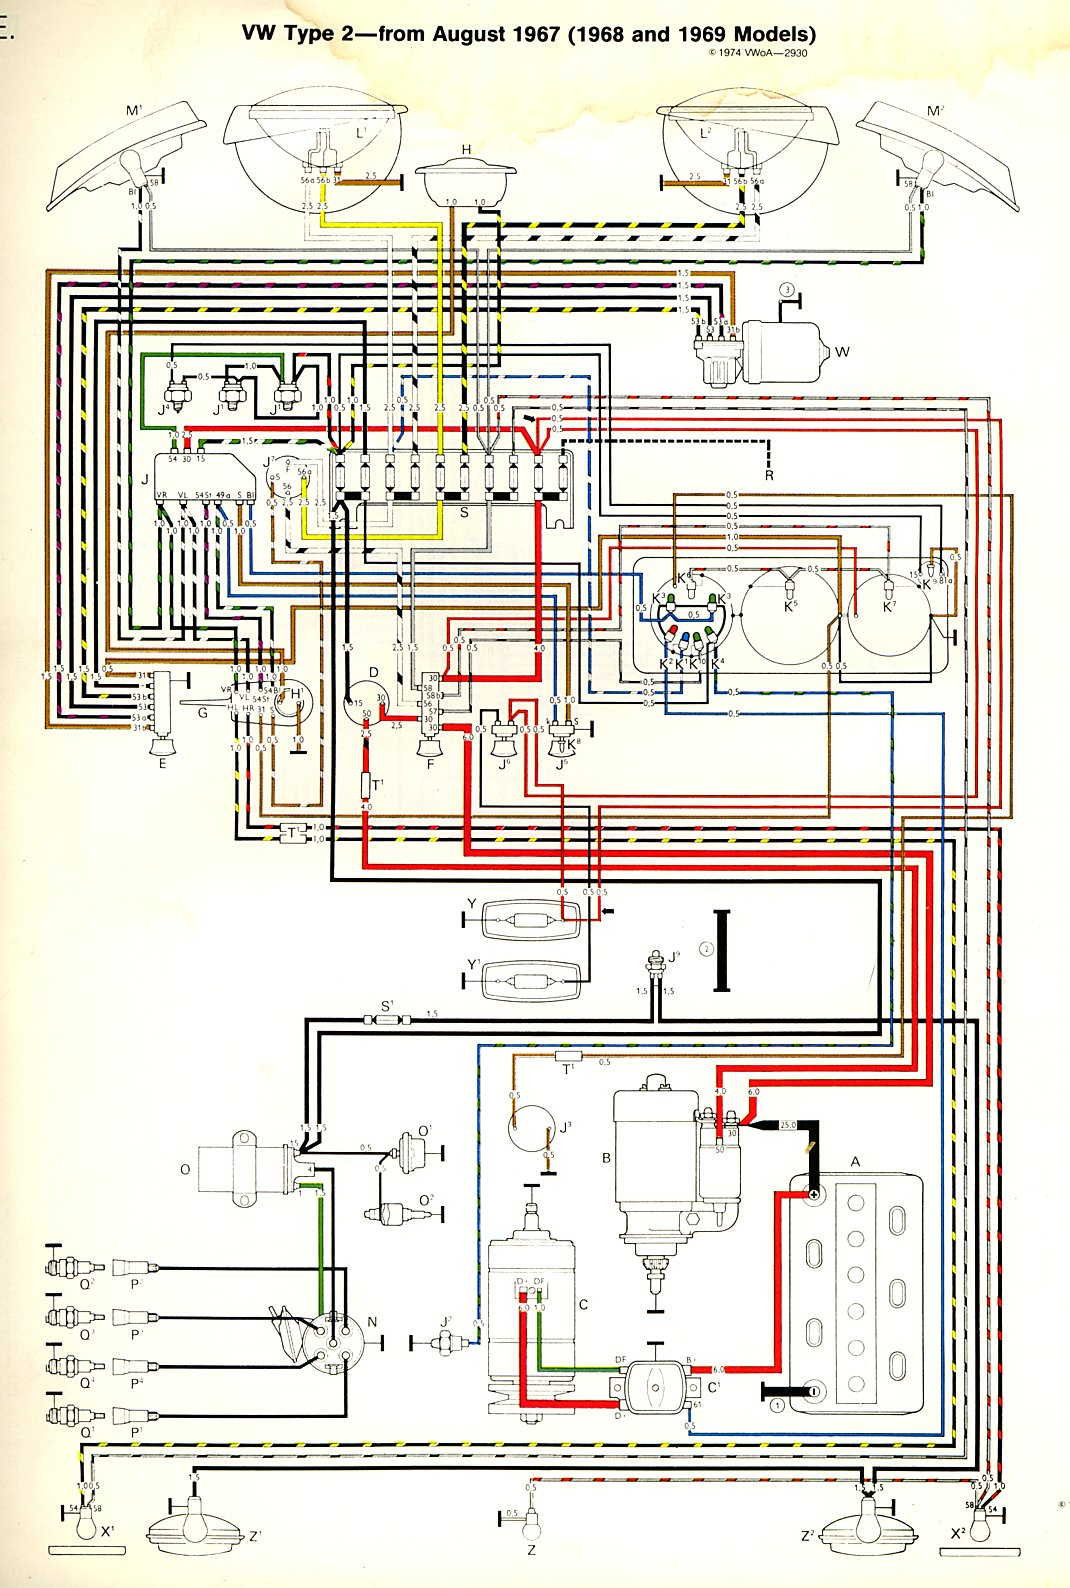 type 2 vw engine diagram 1968 69 bus wiring diagram thegoldenbug com